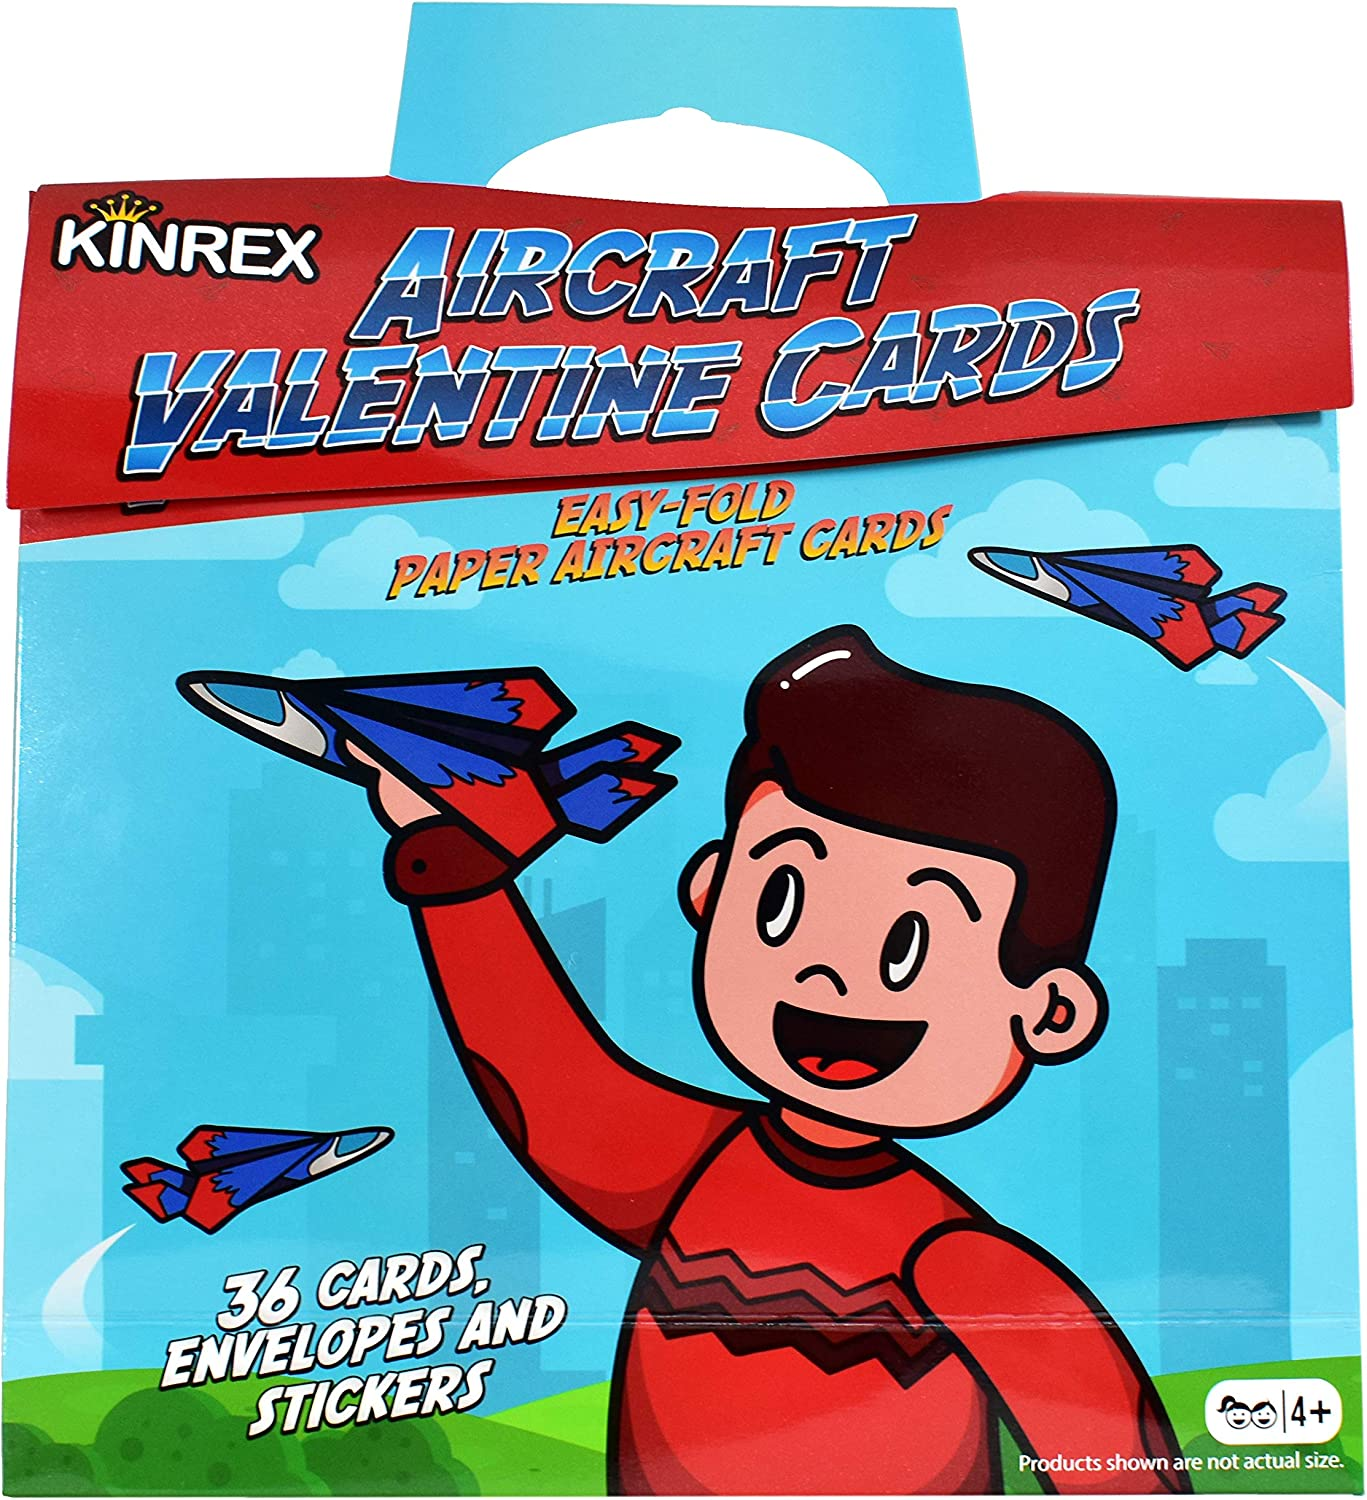 KINREX Valentines Day Cards for Kids 36 Count - Valentine's Paper Airplane Cards for Kids Classroom Teachers Exchange Party Favors Crafts Toy Gifts